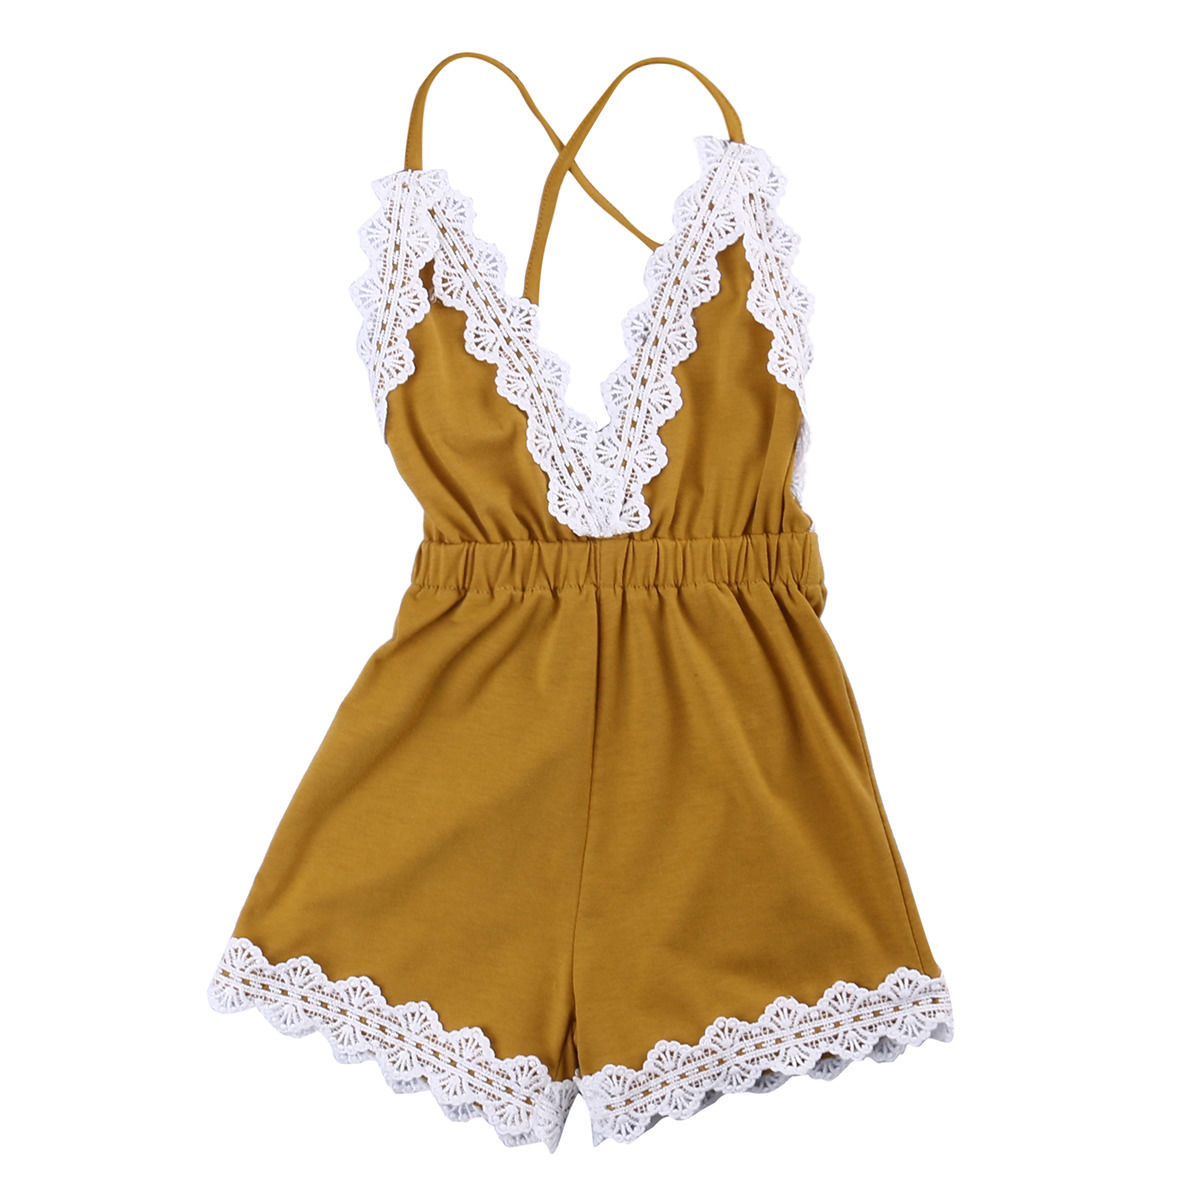 Baby Girl   Romper   2017 Hot Fashion Backless Sleeveless Strappy Summer Baby Girls Lace   Romper   Jumpsuit Sunsuit